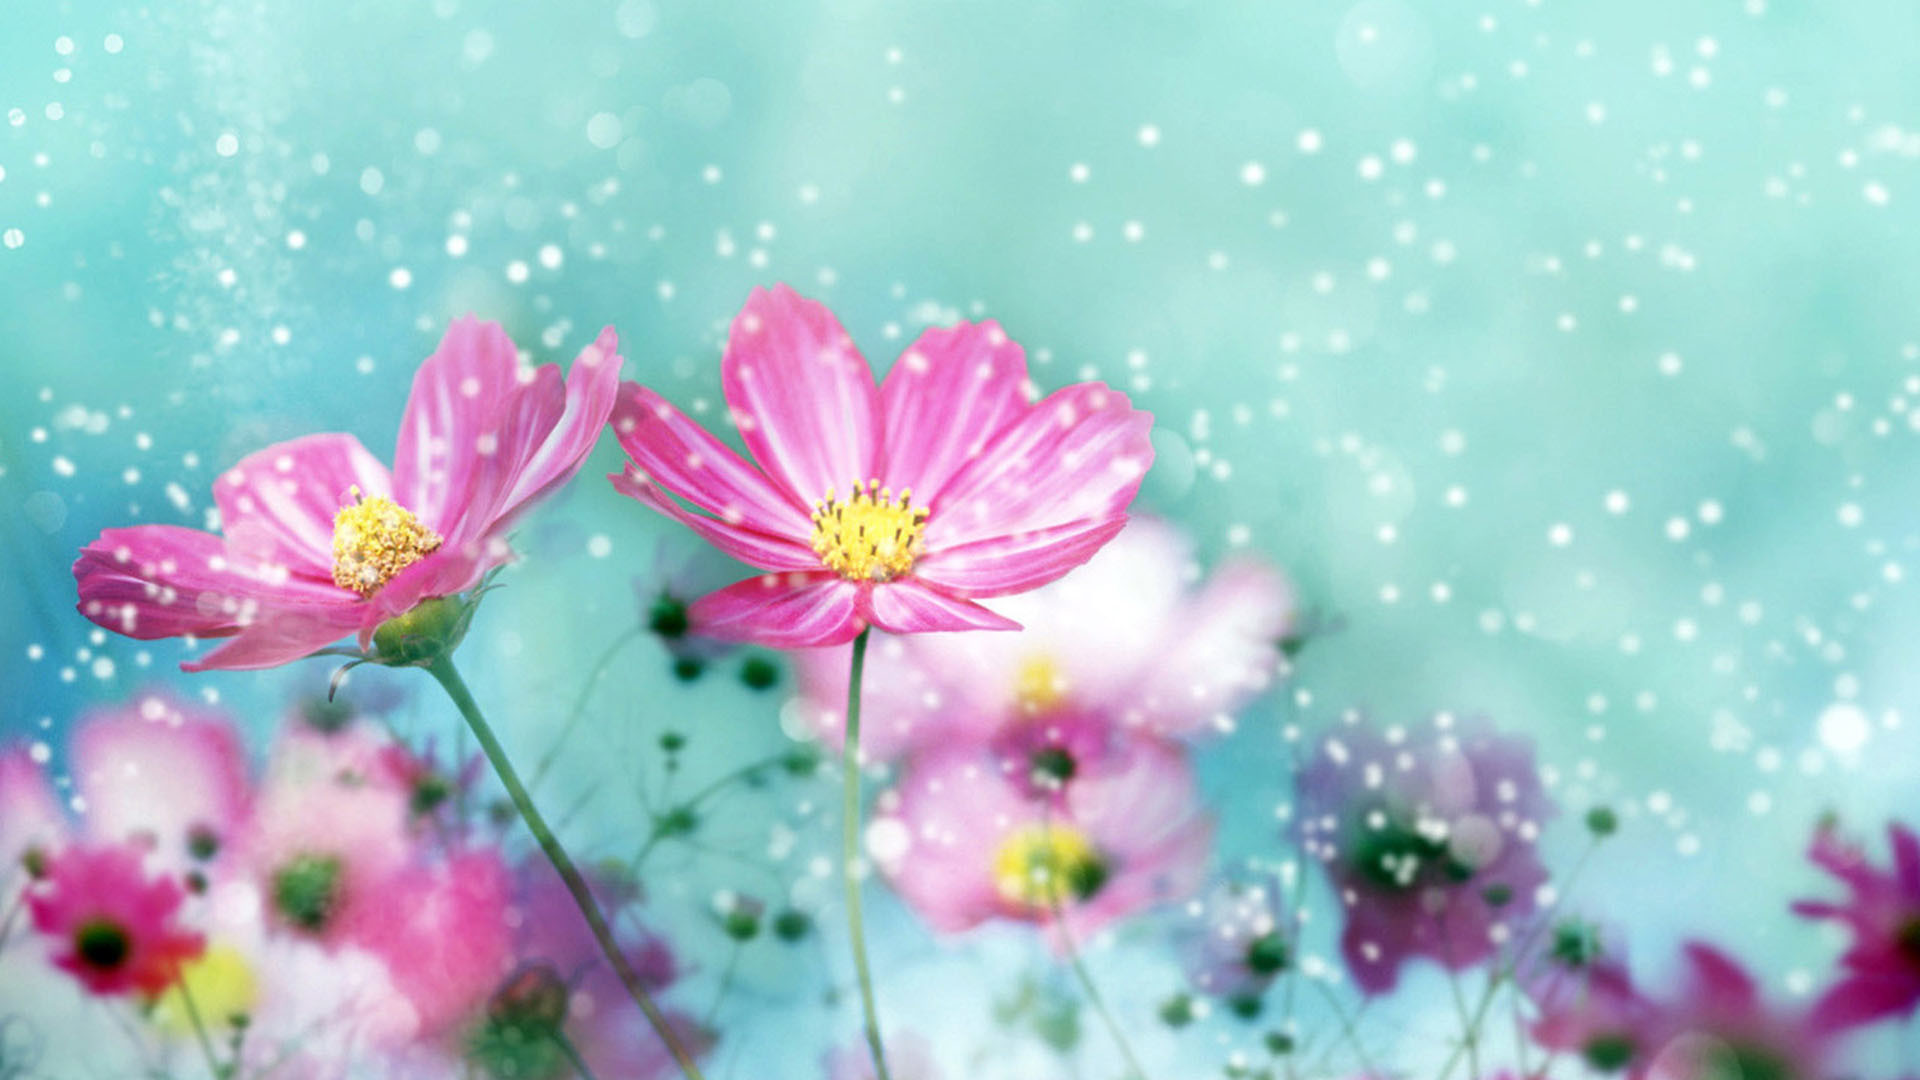 Pictures Of Flowers For Desktop Background ① Wallpapertag